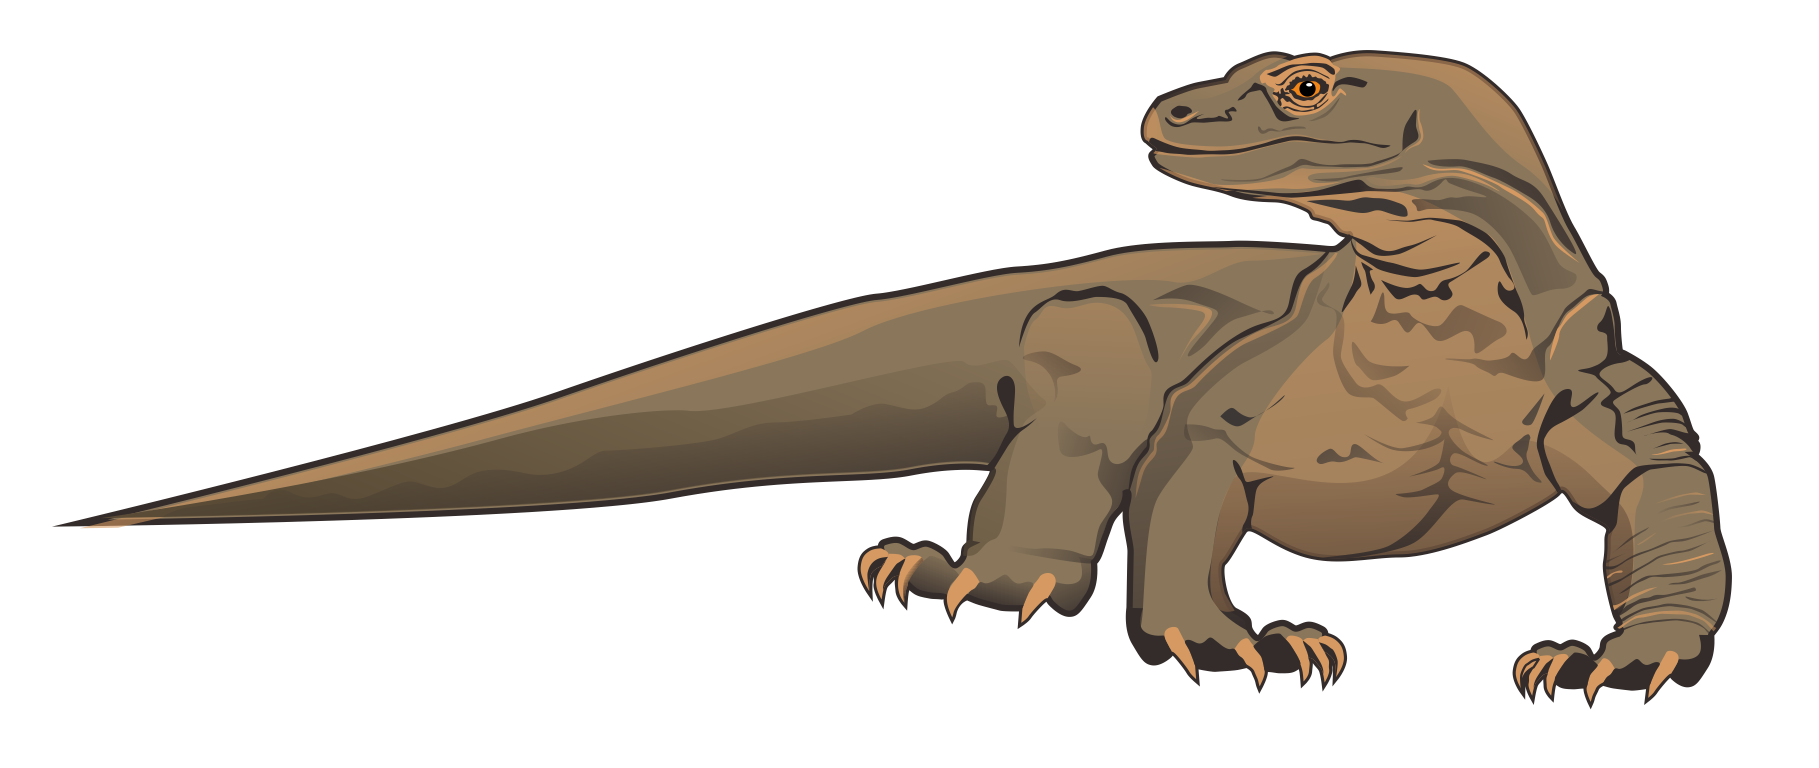 1819x768 Bearded Dragon Clipart Cartoon